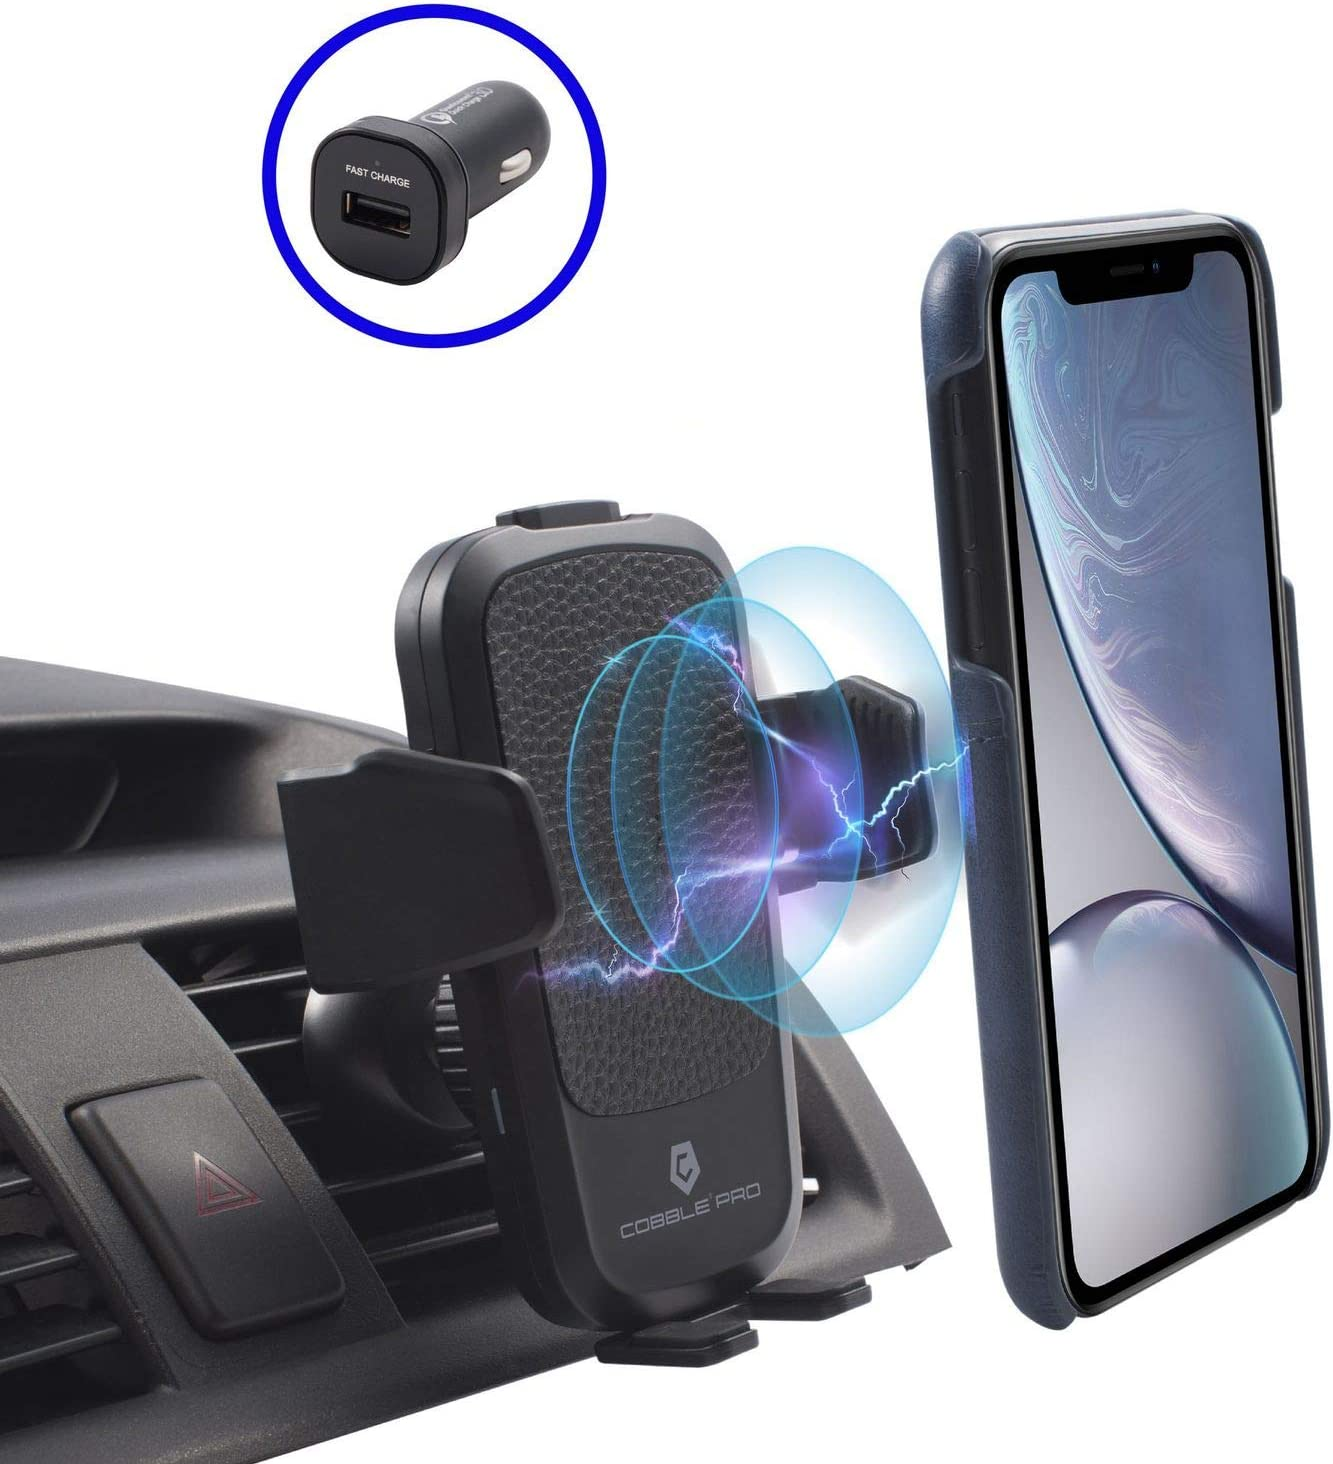 Cobble Pro 10W 7.5W Wireless Car Charger Mount Air Vent Phone Holder Include QC 3.0 Quick Charge Adapter Compatible with iPhone 11//11 Pro Max//X Xs XR 8 Plus//Samsung S10 S10+//Google Pixel 4 4a XL 3 3a